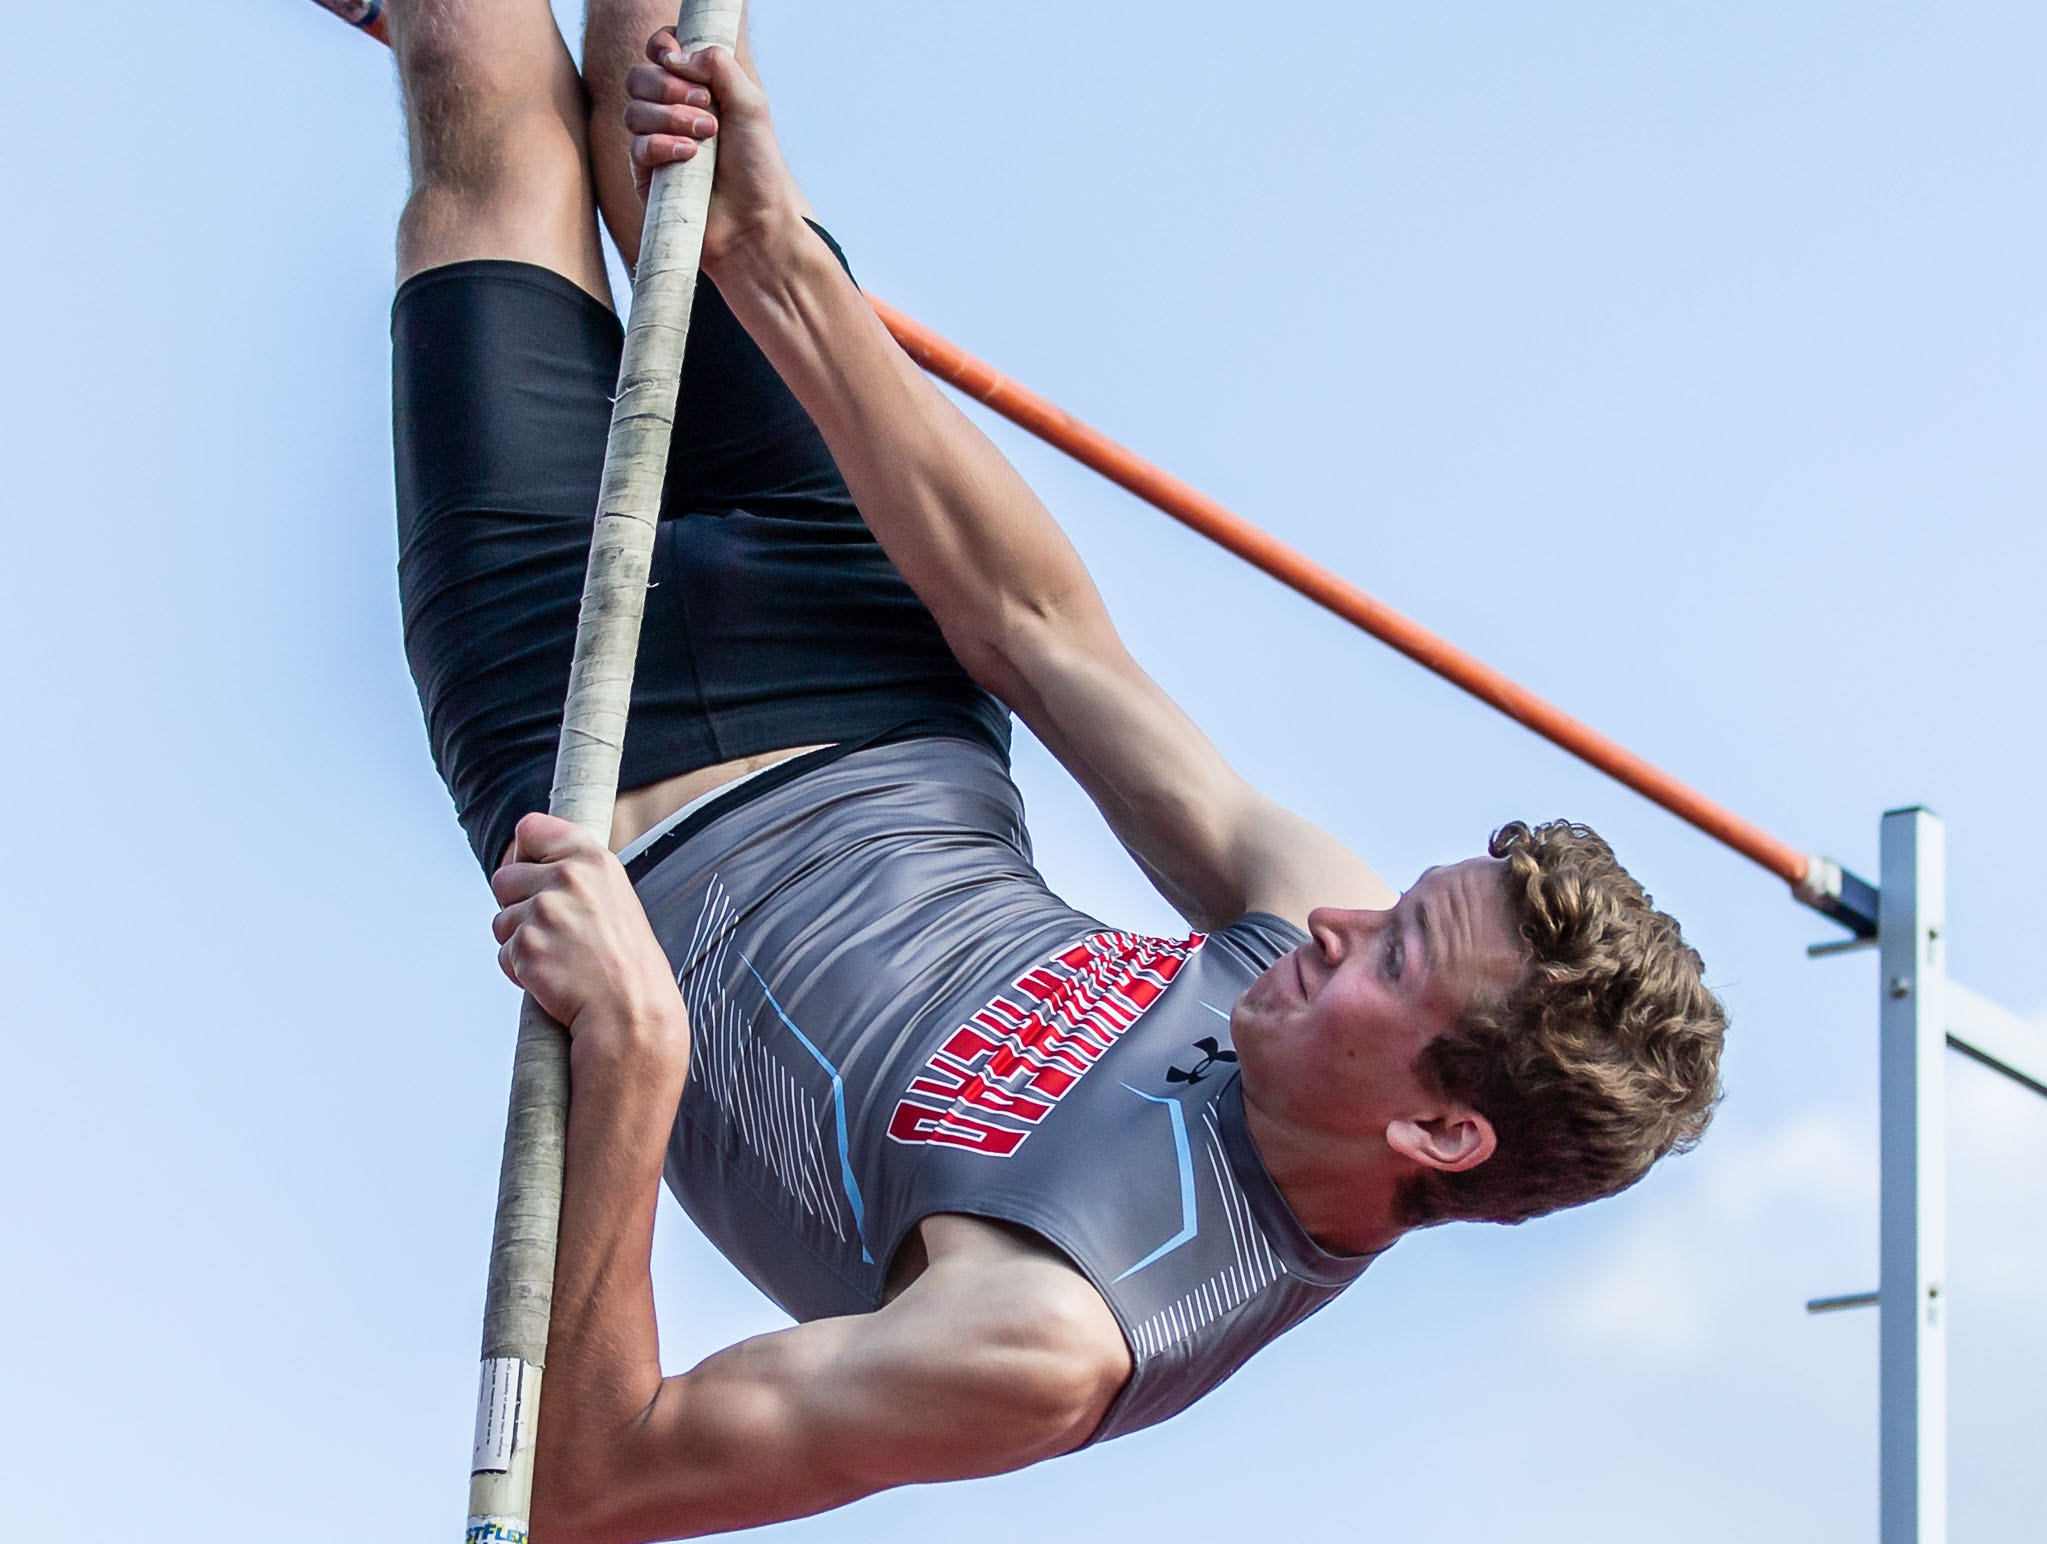 Arrowhead junior Grayson Adams competes in the pole vault at the 2019 Myrhum Invitational track and field meet in Hartland on Saturday, May 4.